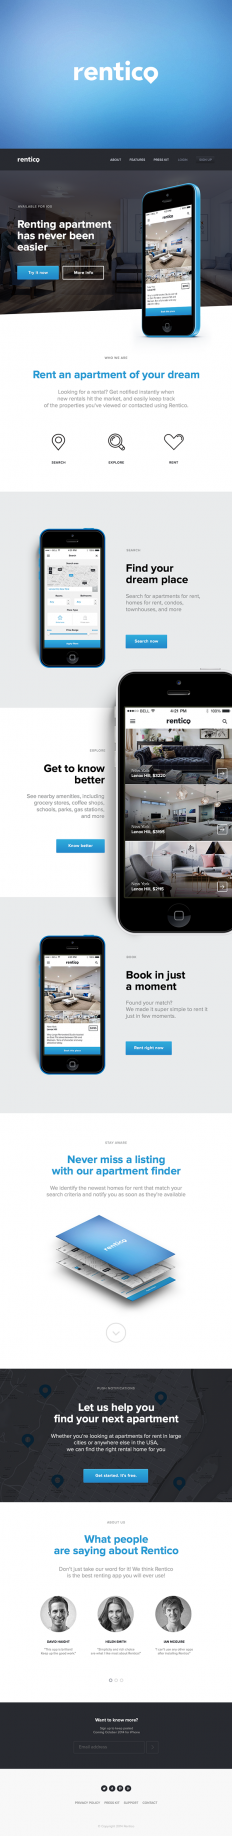 Rentico – mobile application for renting an apartment by Serge Vasil on Inspirationde